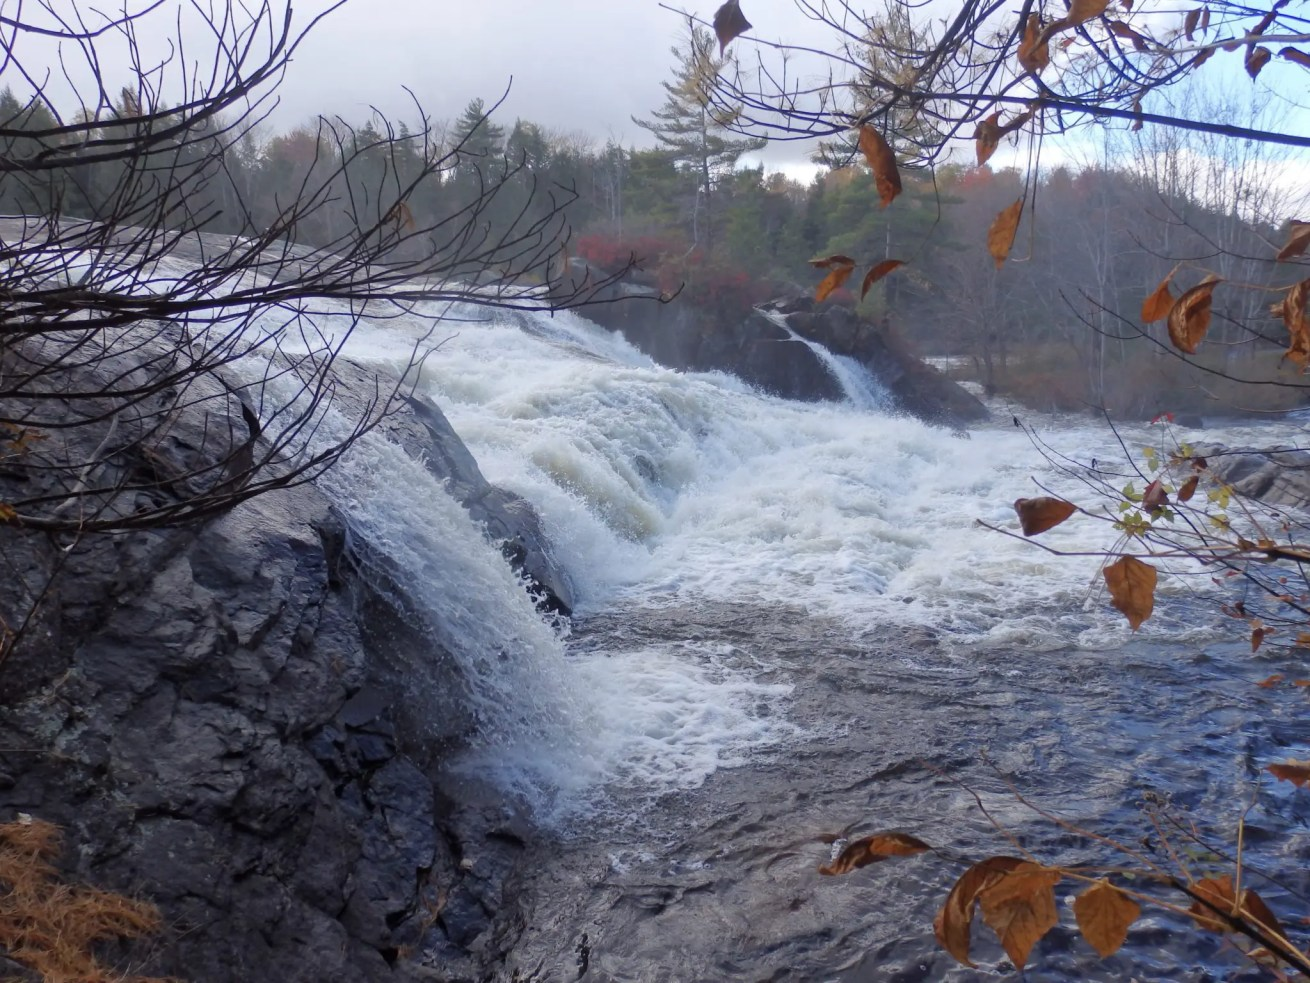 Fowlersville Falls #2, Lewis County, New York